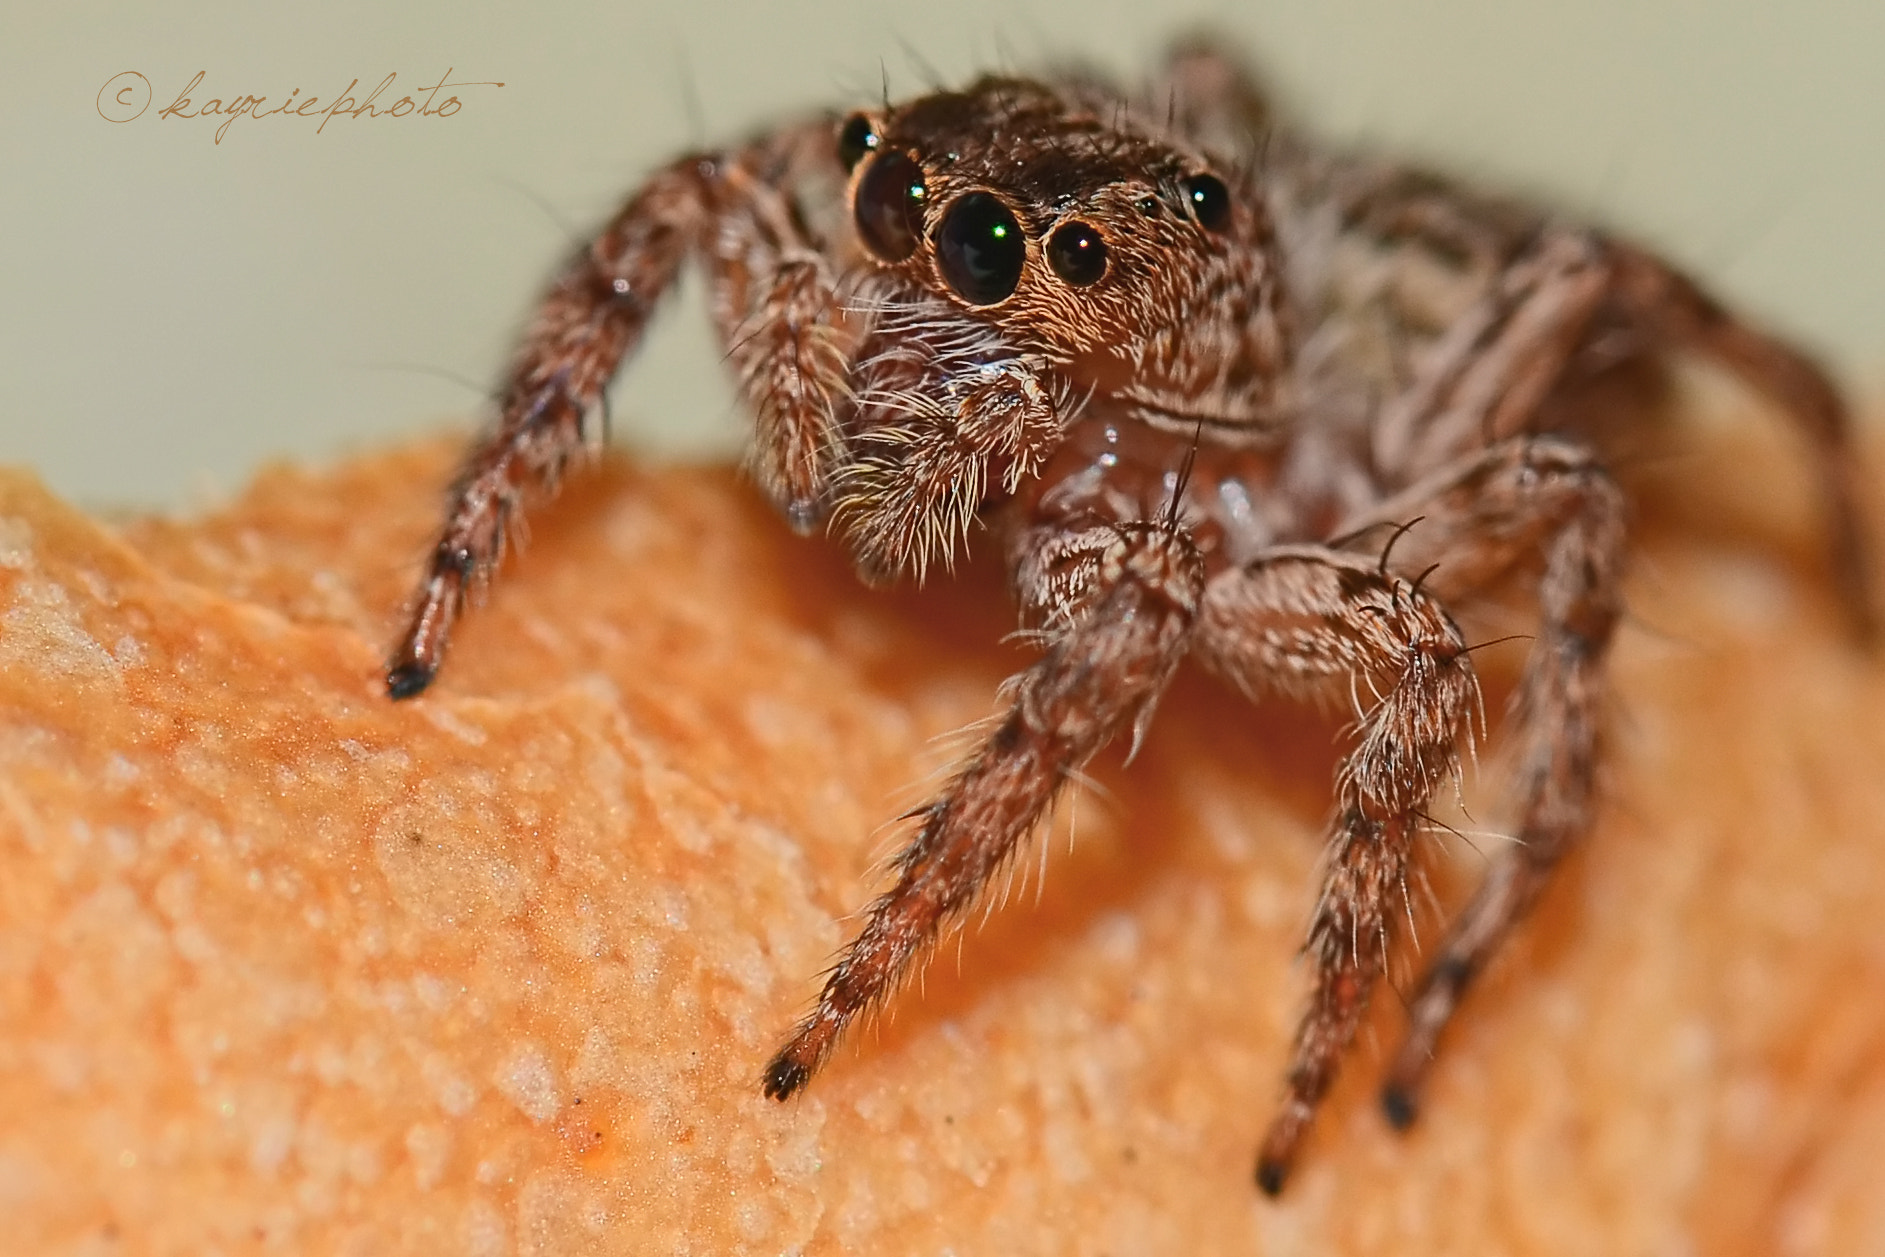 Photograph Spider on top of bread by keri ganu on 500px